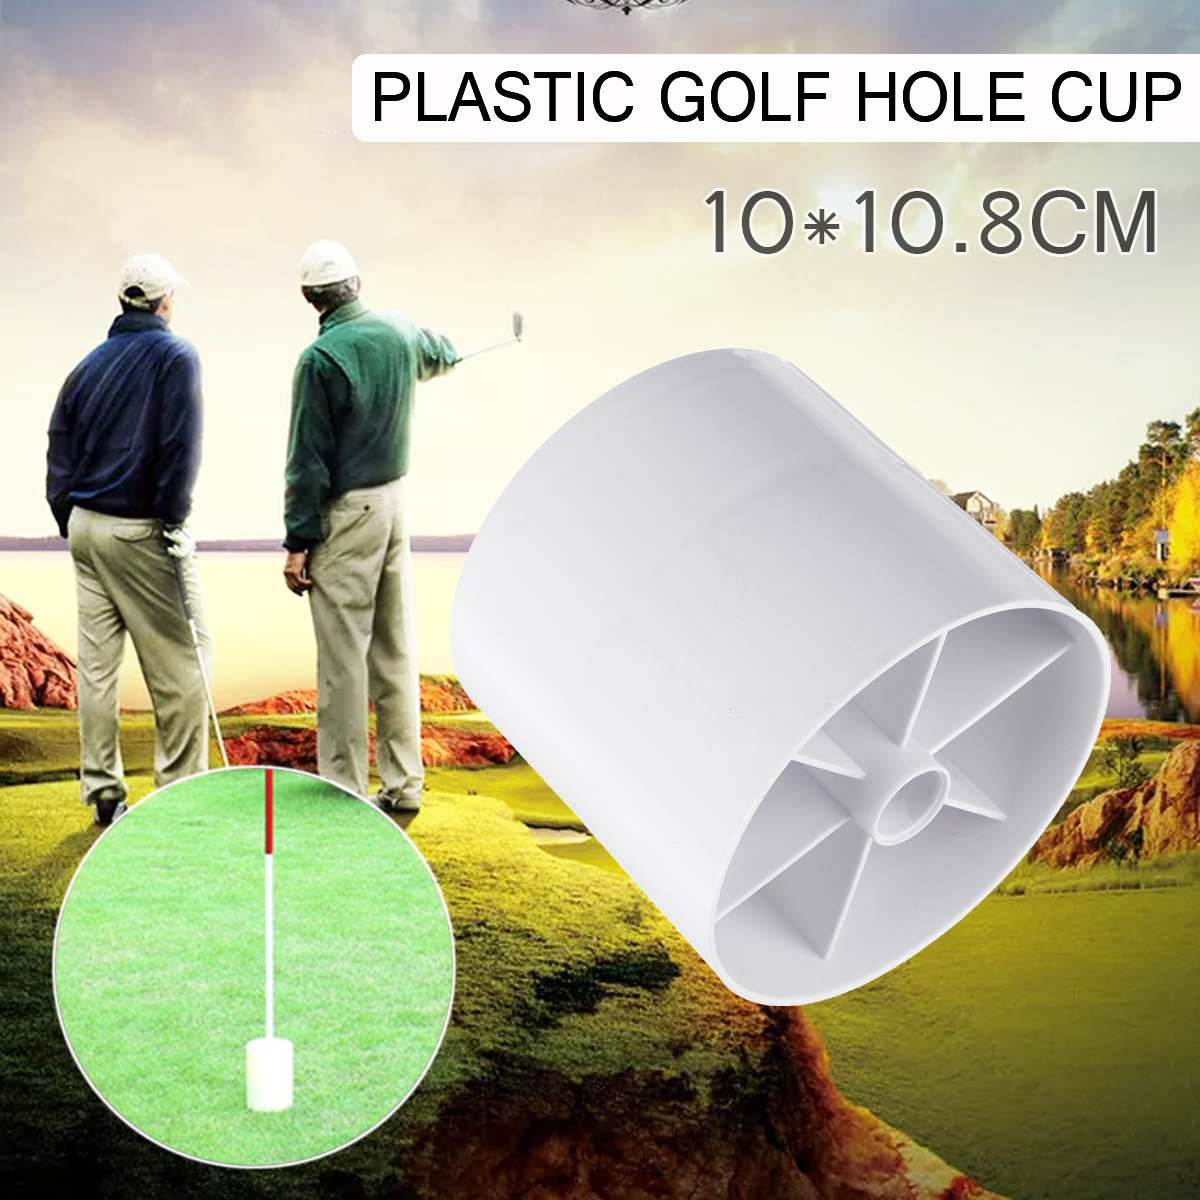 Golf Training Aids White Plastic Golf Hole Cup Putting Putter Golf Flag Stick Yard Garden Training Backyard Practice Putting